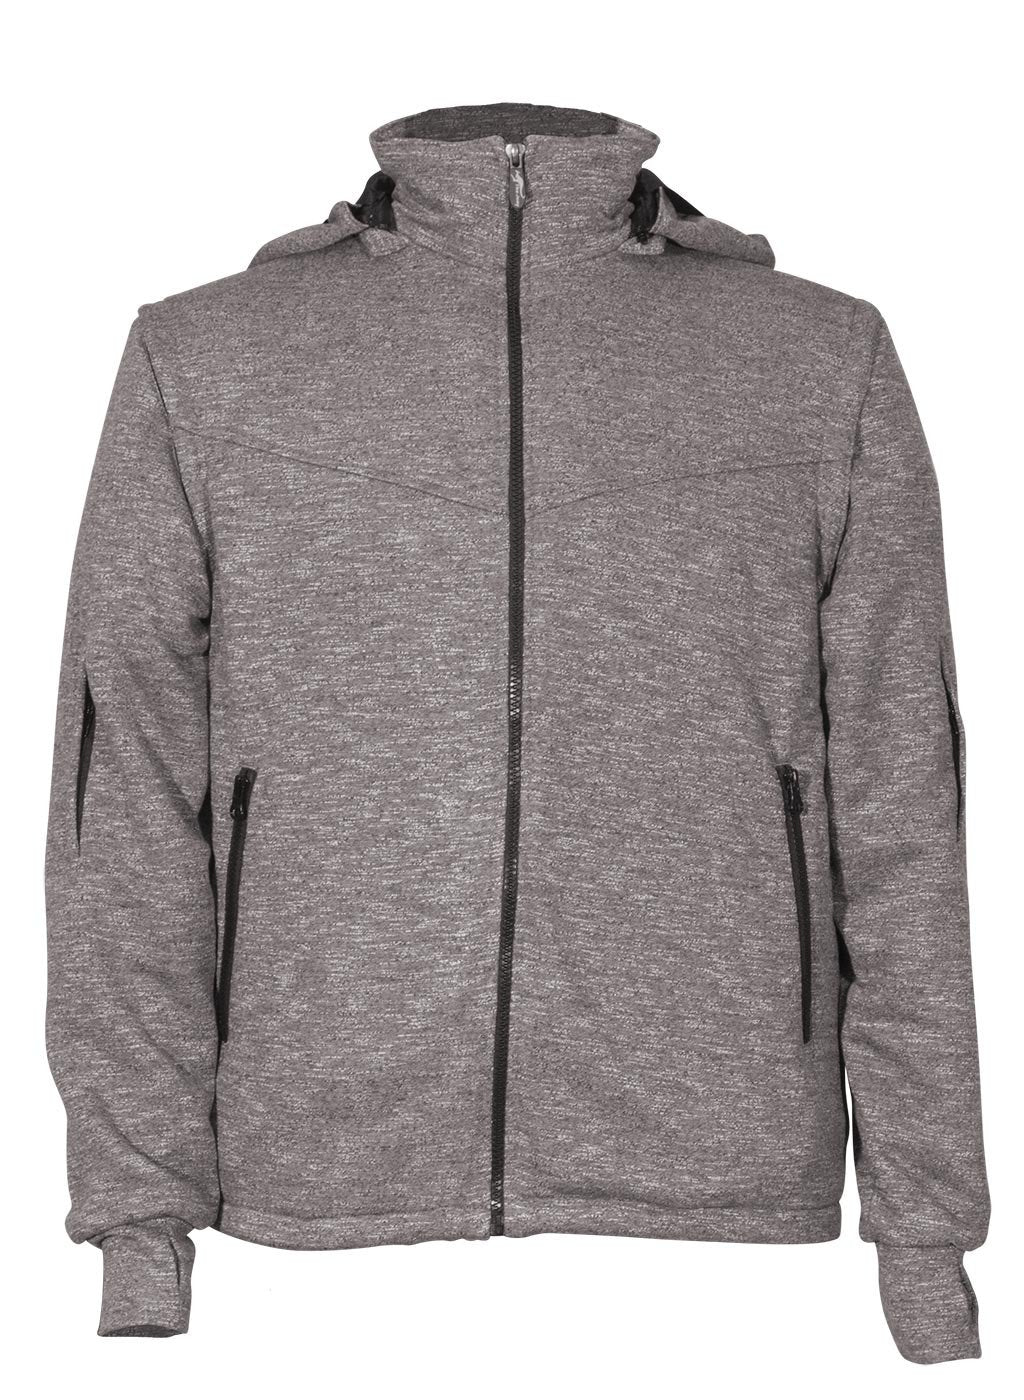 Joey dark grey sweatshirt front